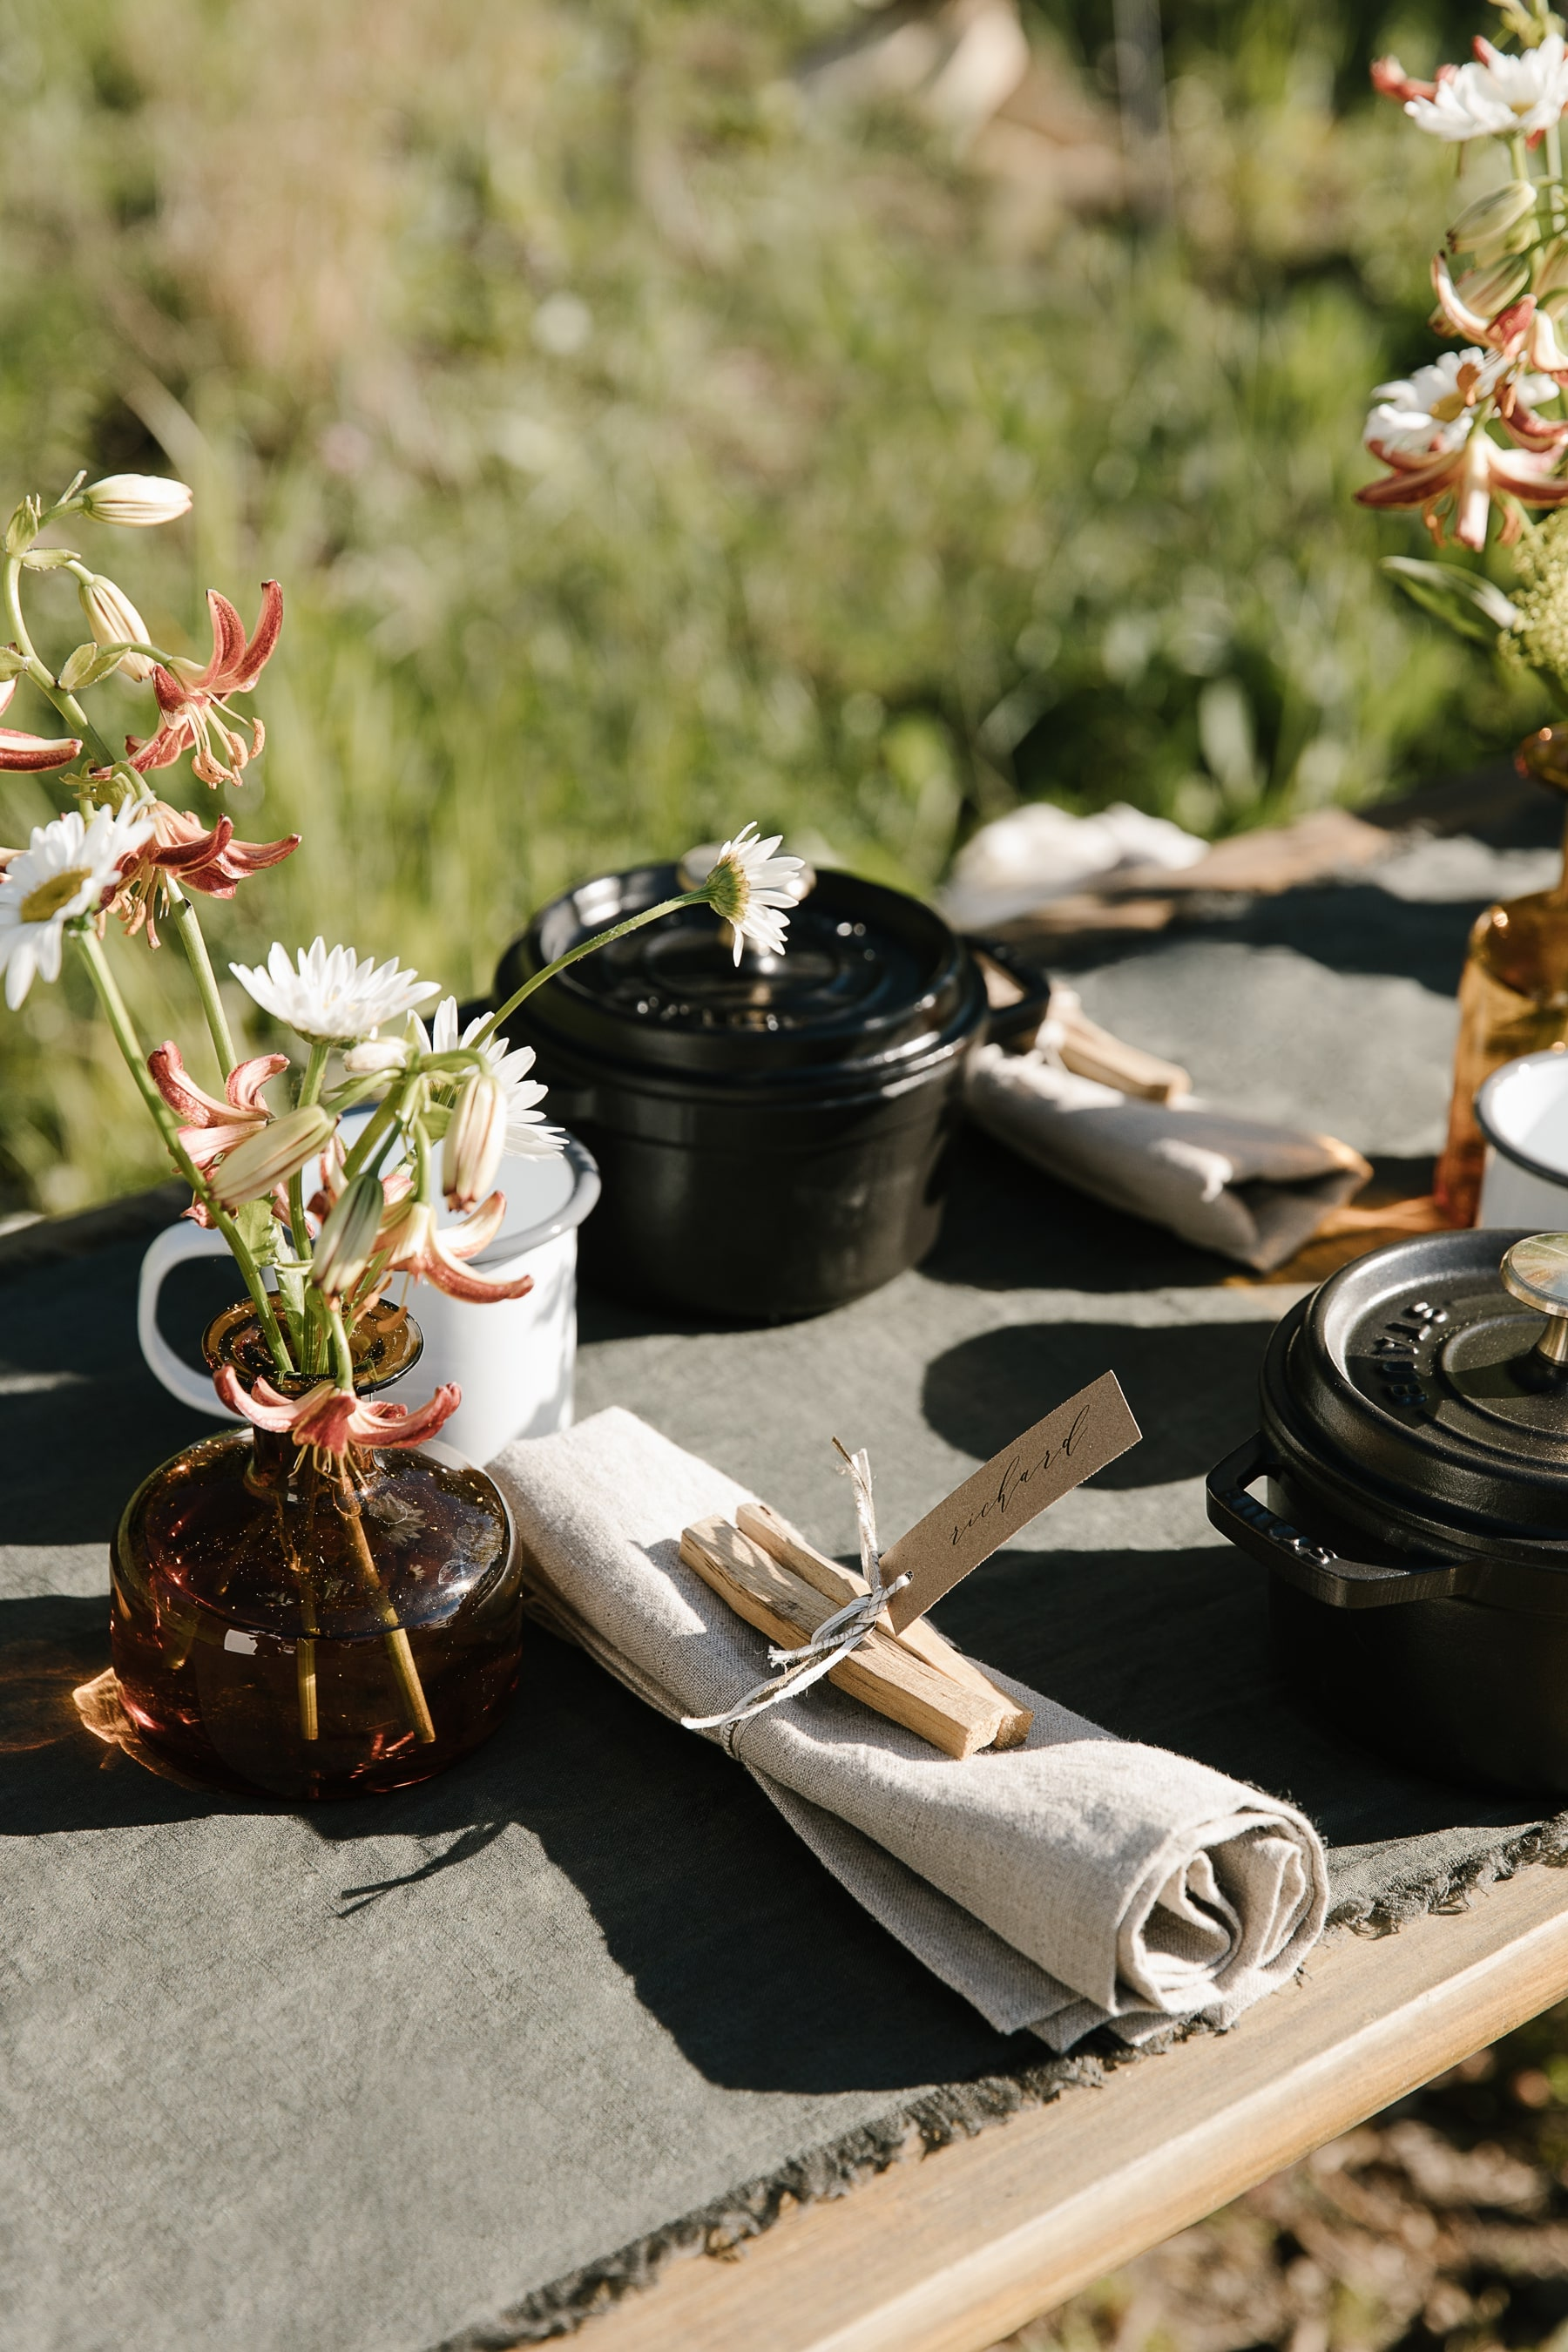 campfire dinner table setting with Jenni Kayne